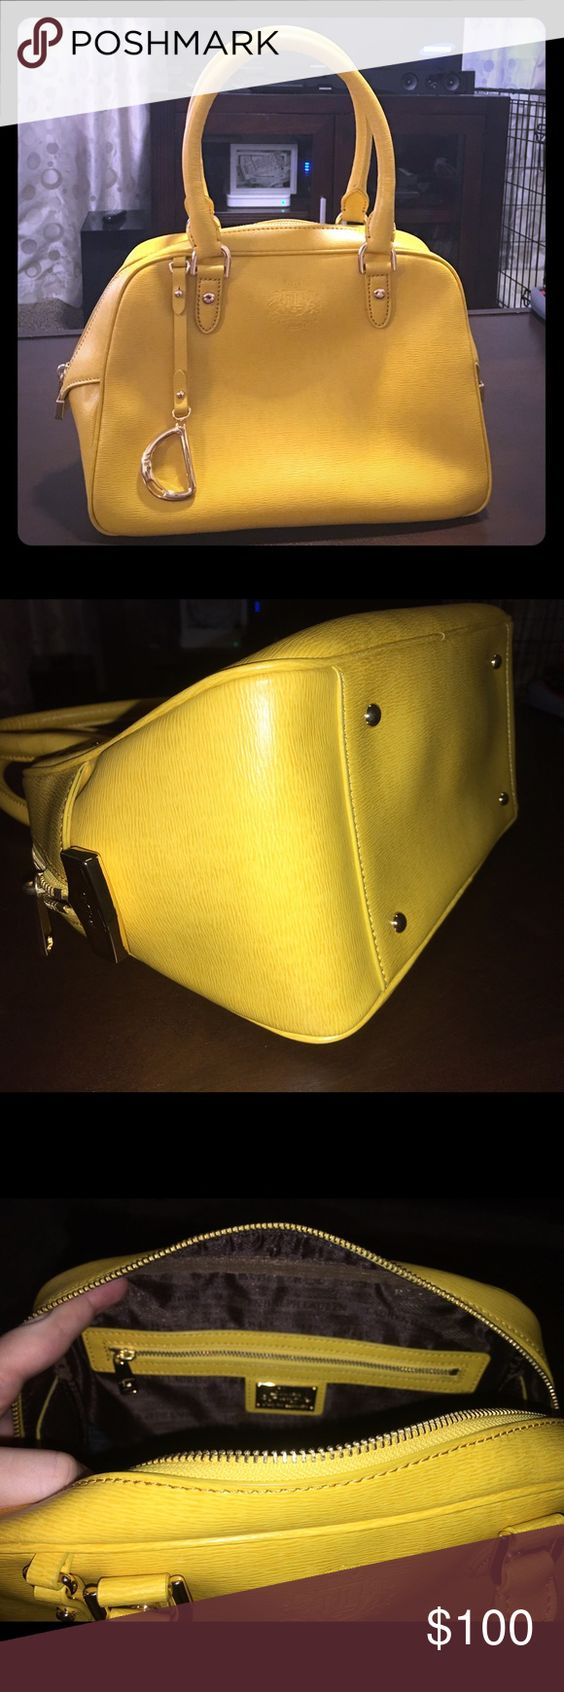 Yellow Ralph Lauren Sloan Street Dome Satchel Brand new, never used, received as a gift. Bag only, no dust bag, tags removed. No scratches whatsoever. Beautiful summer glam top handle hand bag! Ralph Lauren Bags Satchels